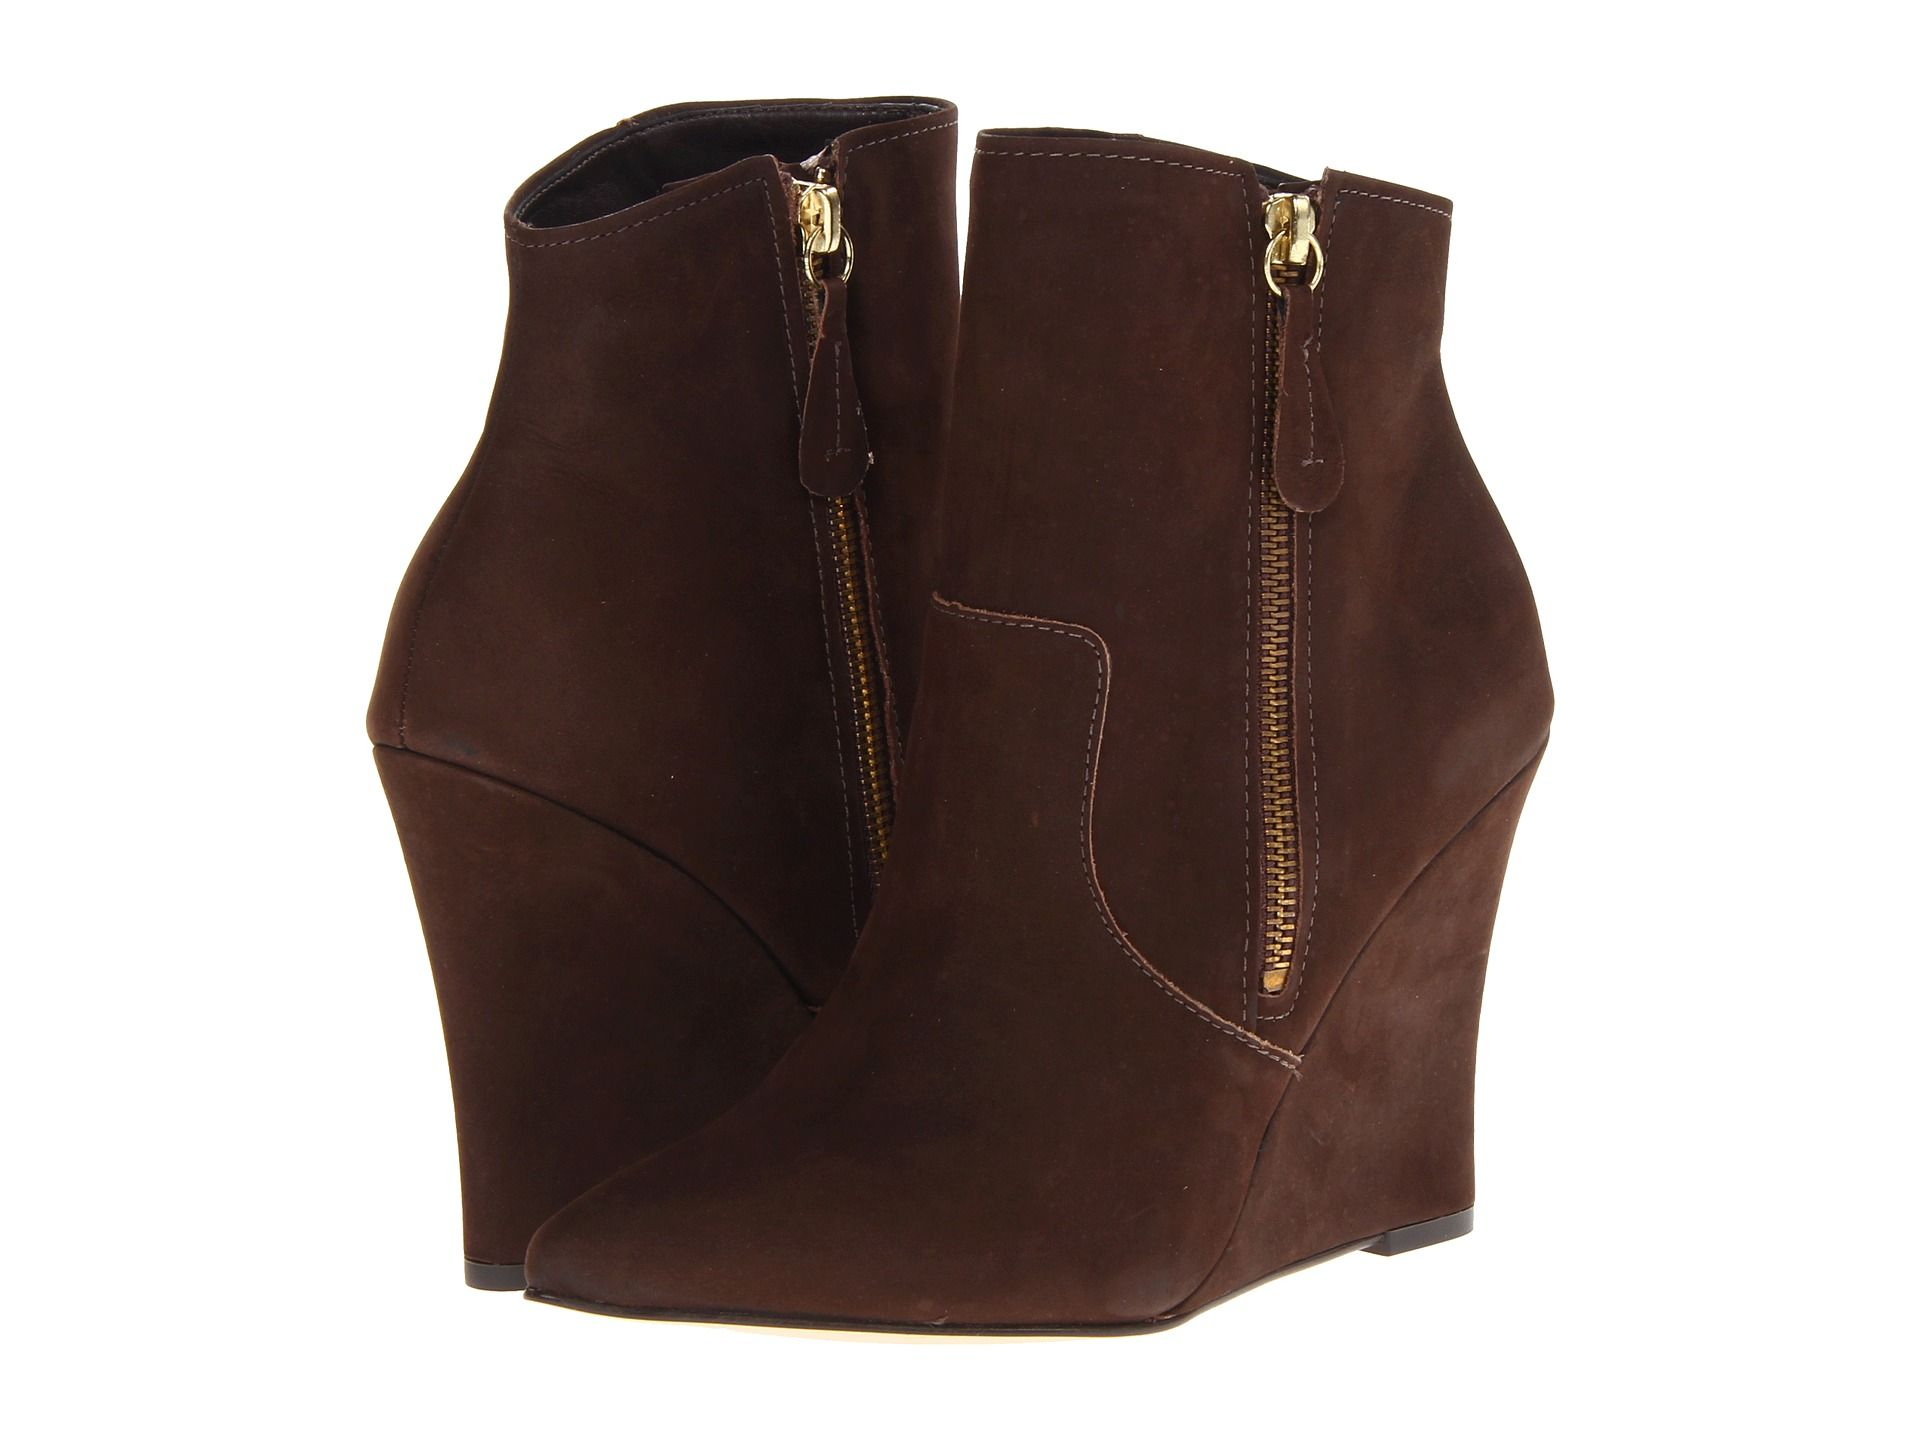 On Sale for 44% OFF Steve Madden Shoes in Steven Meter #booties #brown #sale #freeshipping